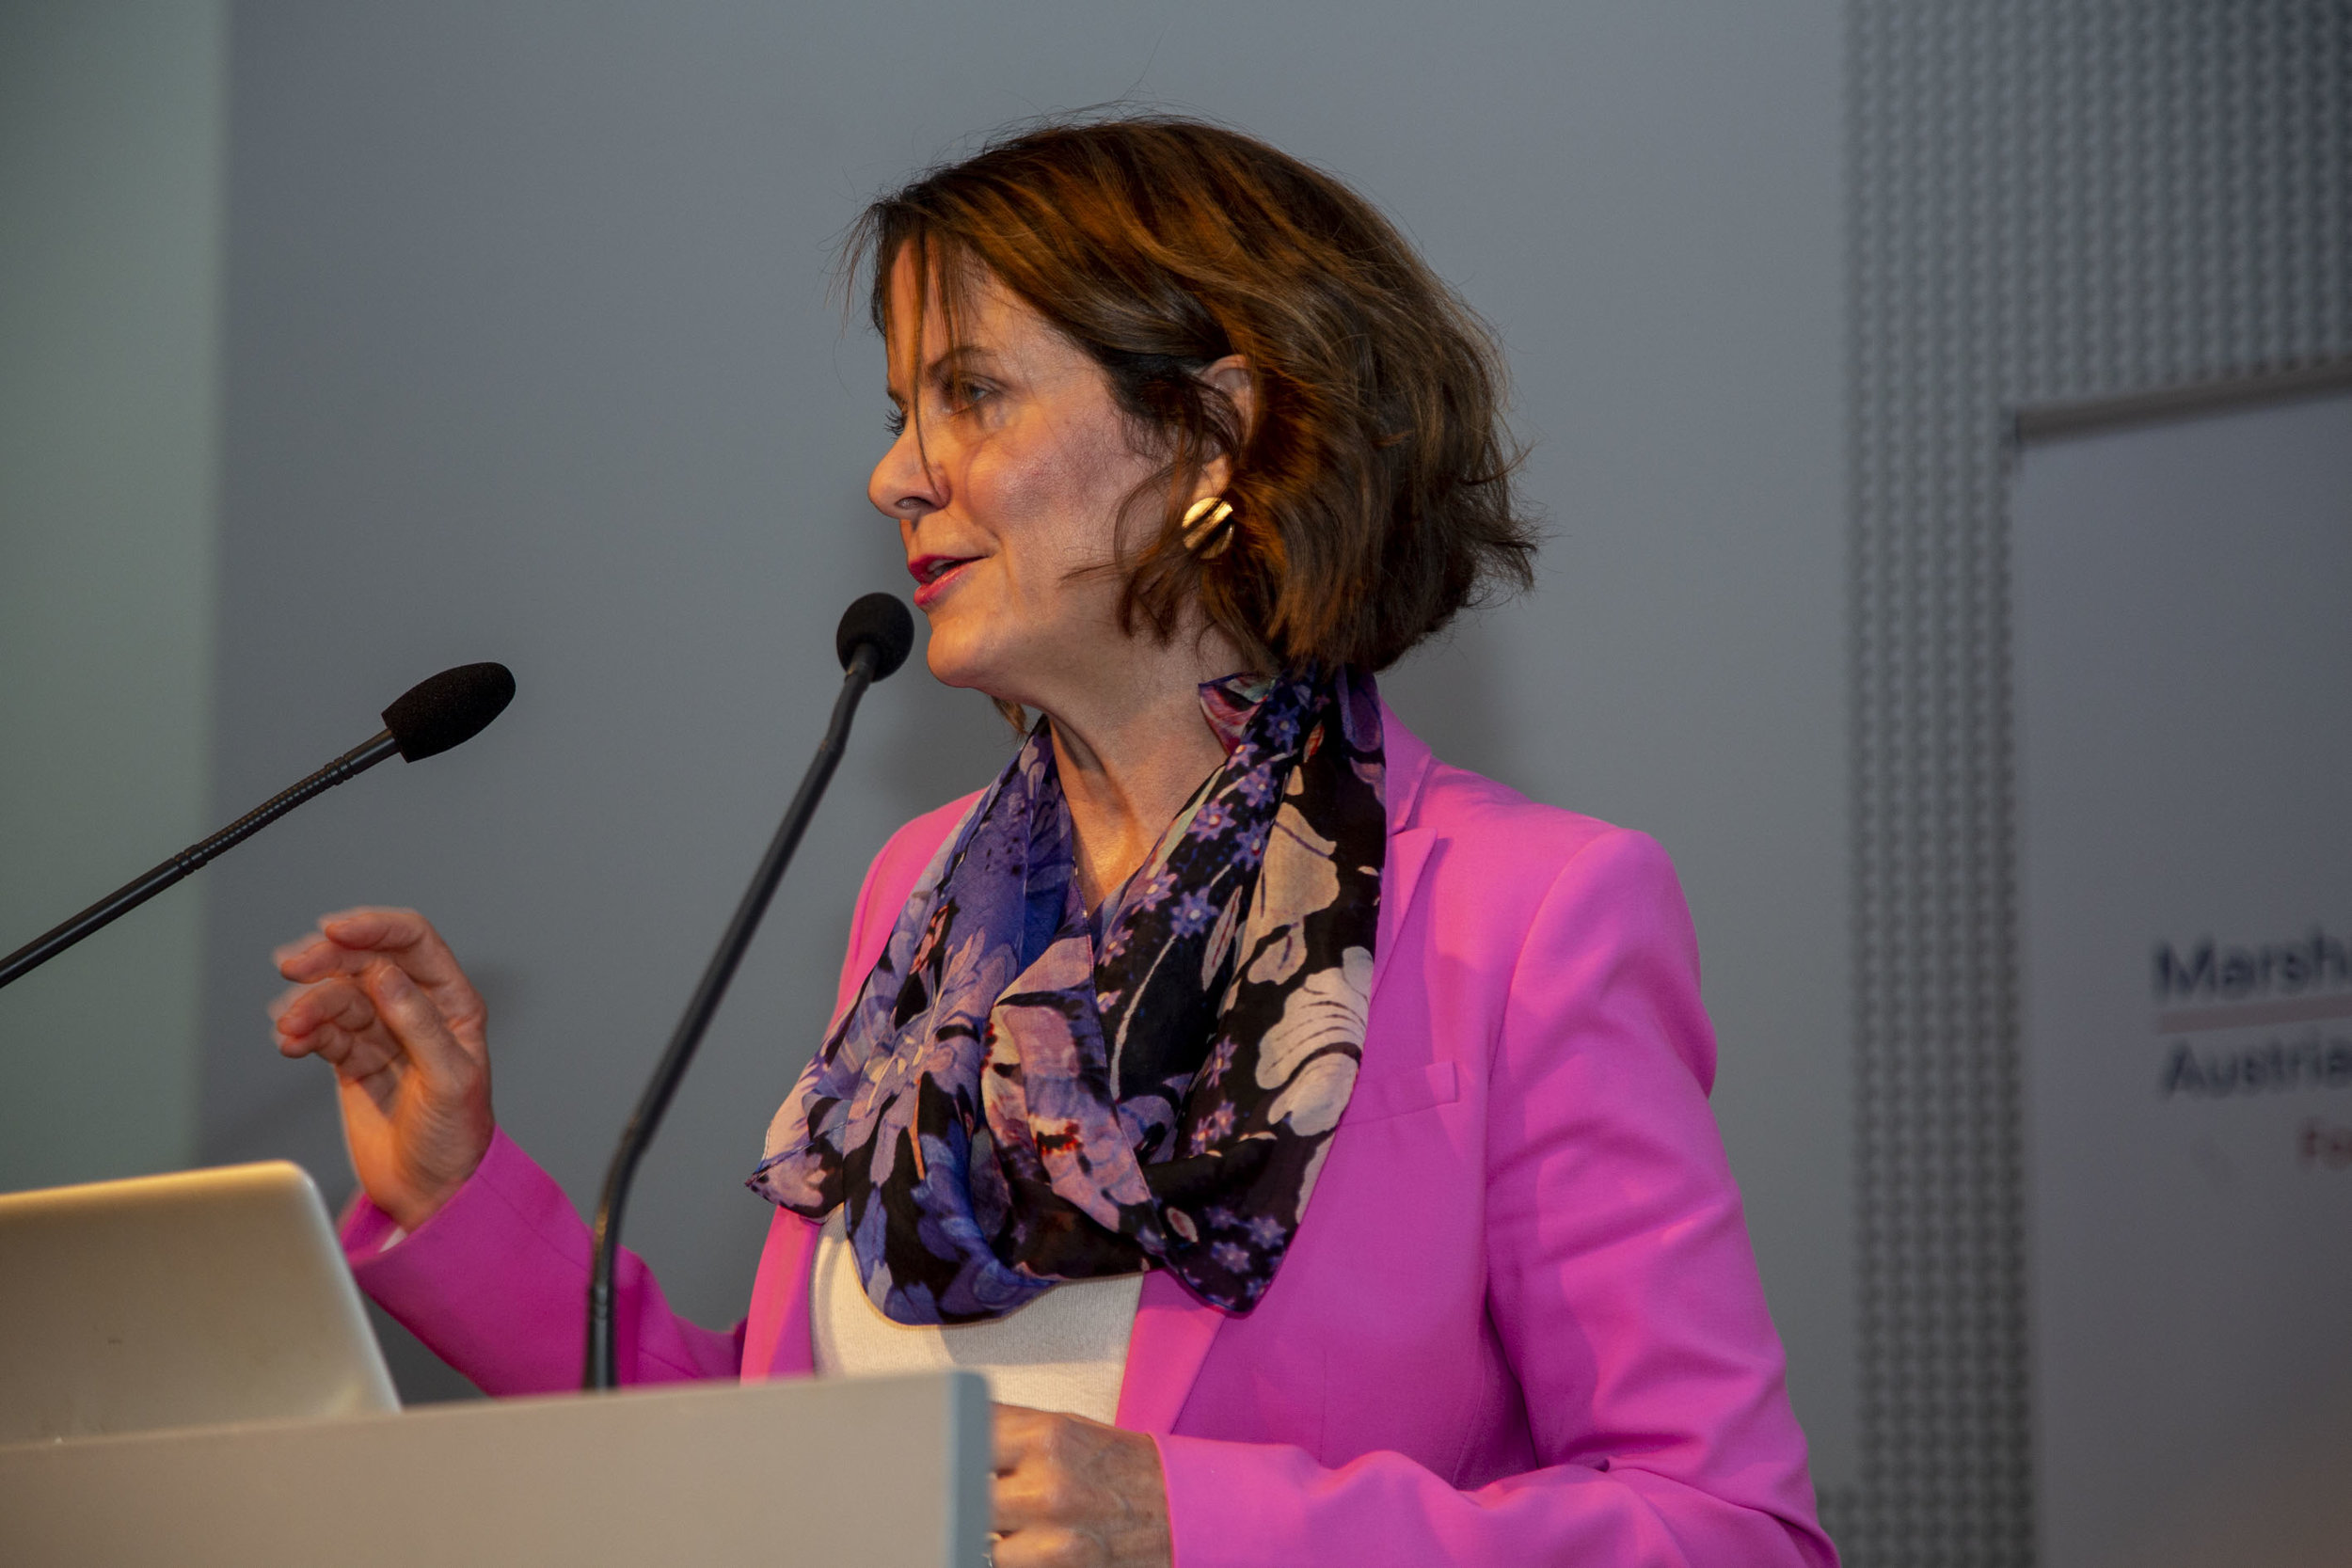 Robin L. Dunningham, Minister-Counselor, Embassy of the United States in Austria